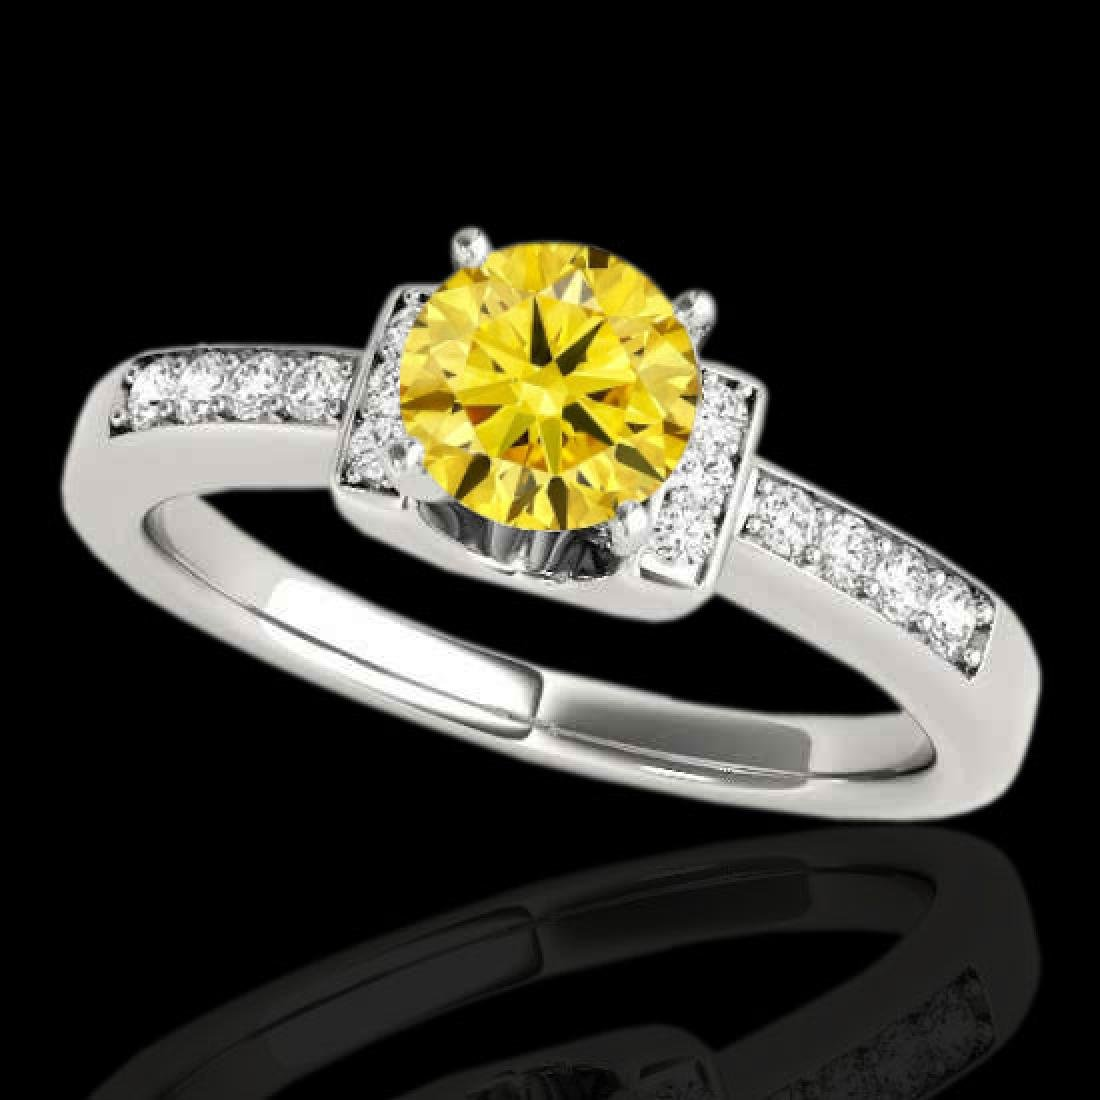 1.11 CTW Certified Si Fancy Yellow Diamond Solitaire